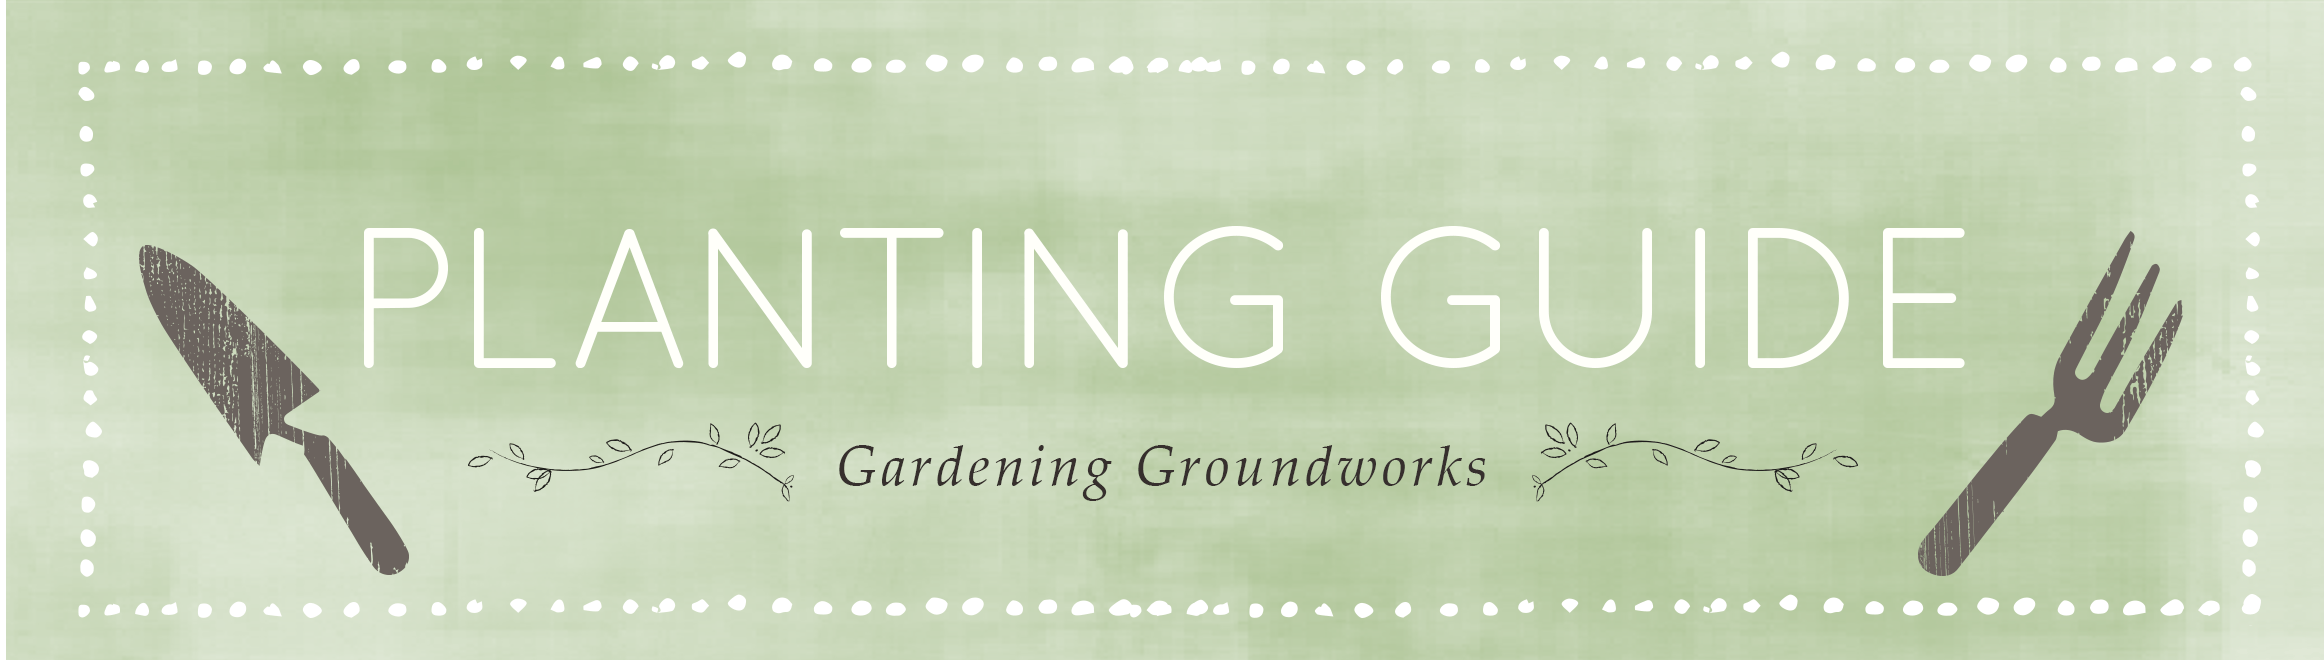 Illustration of the words Planting Guide